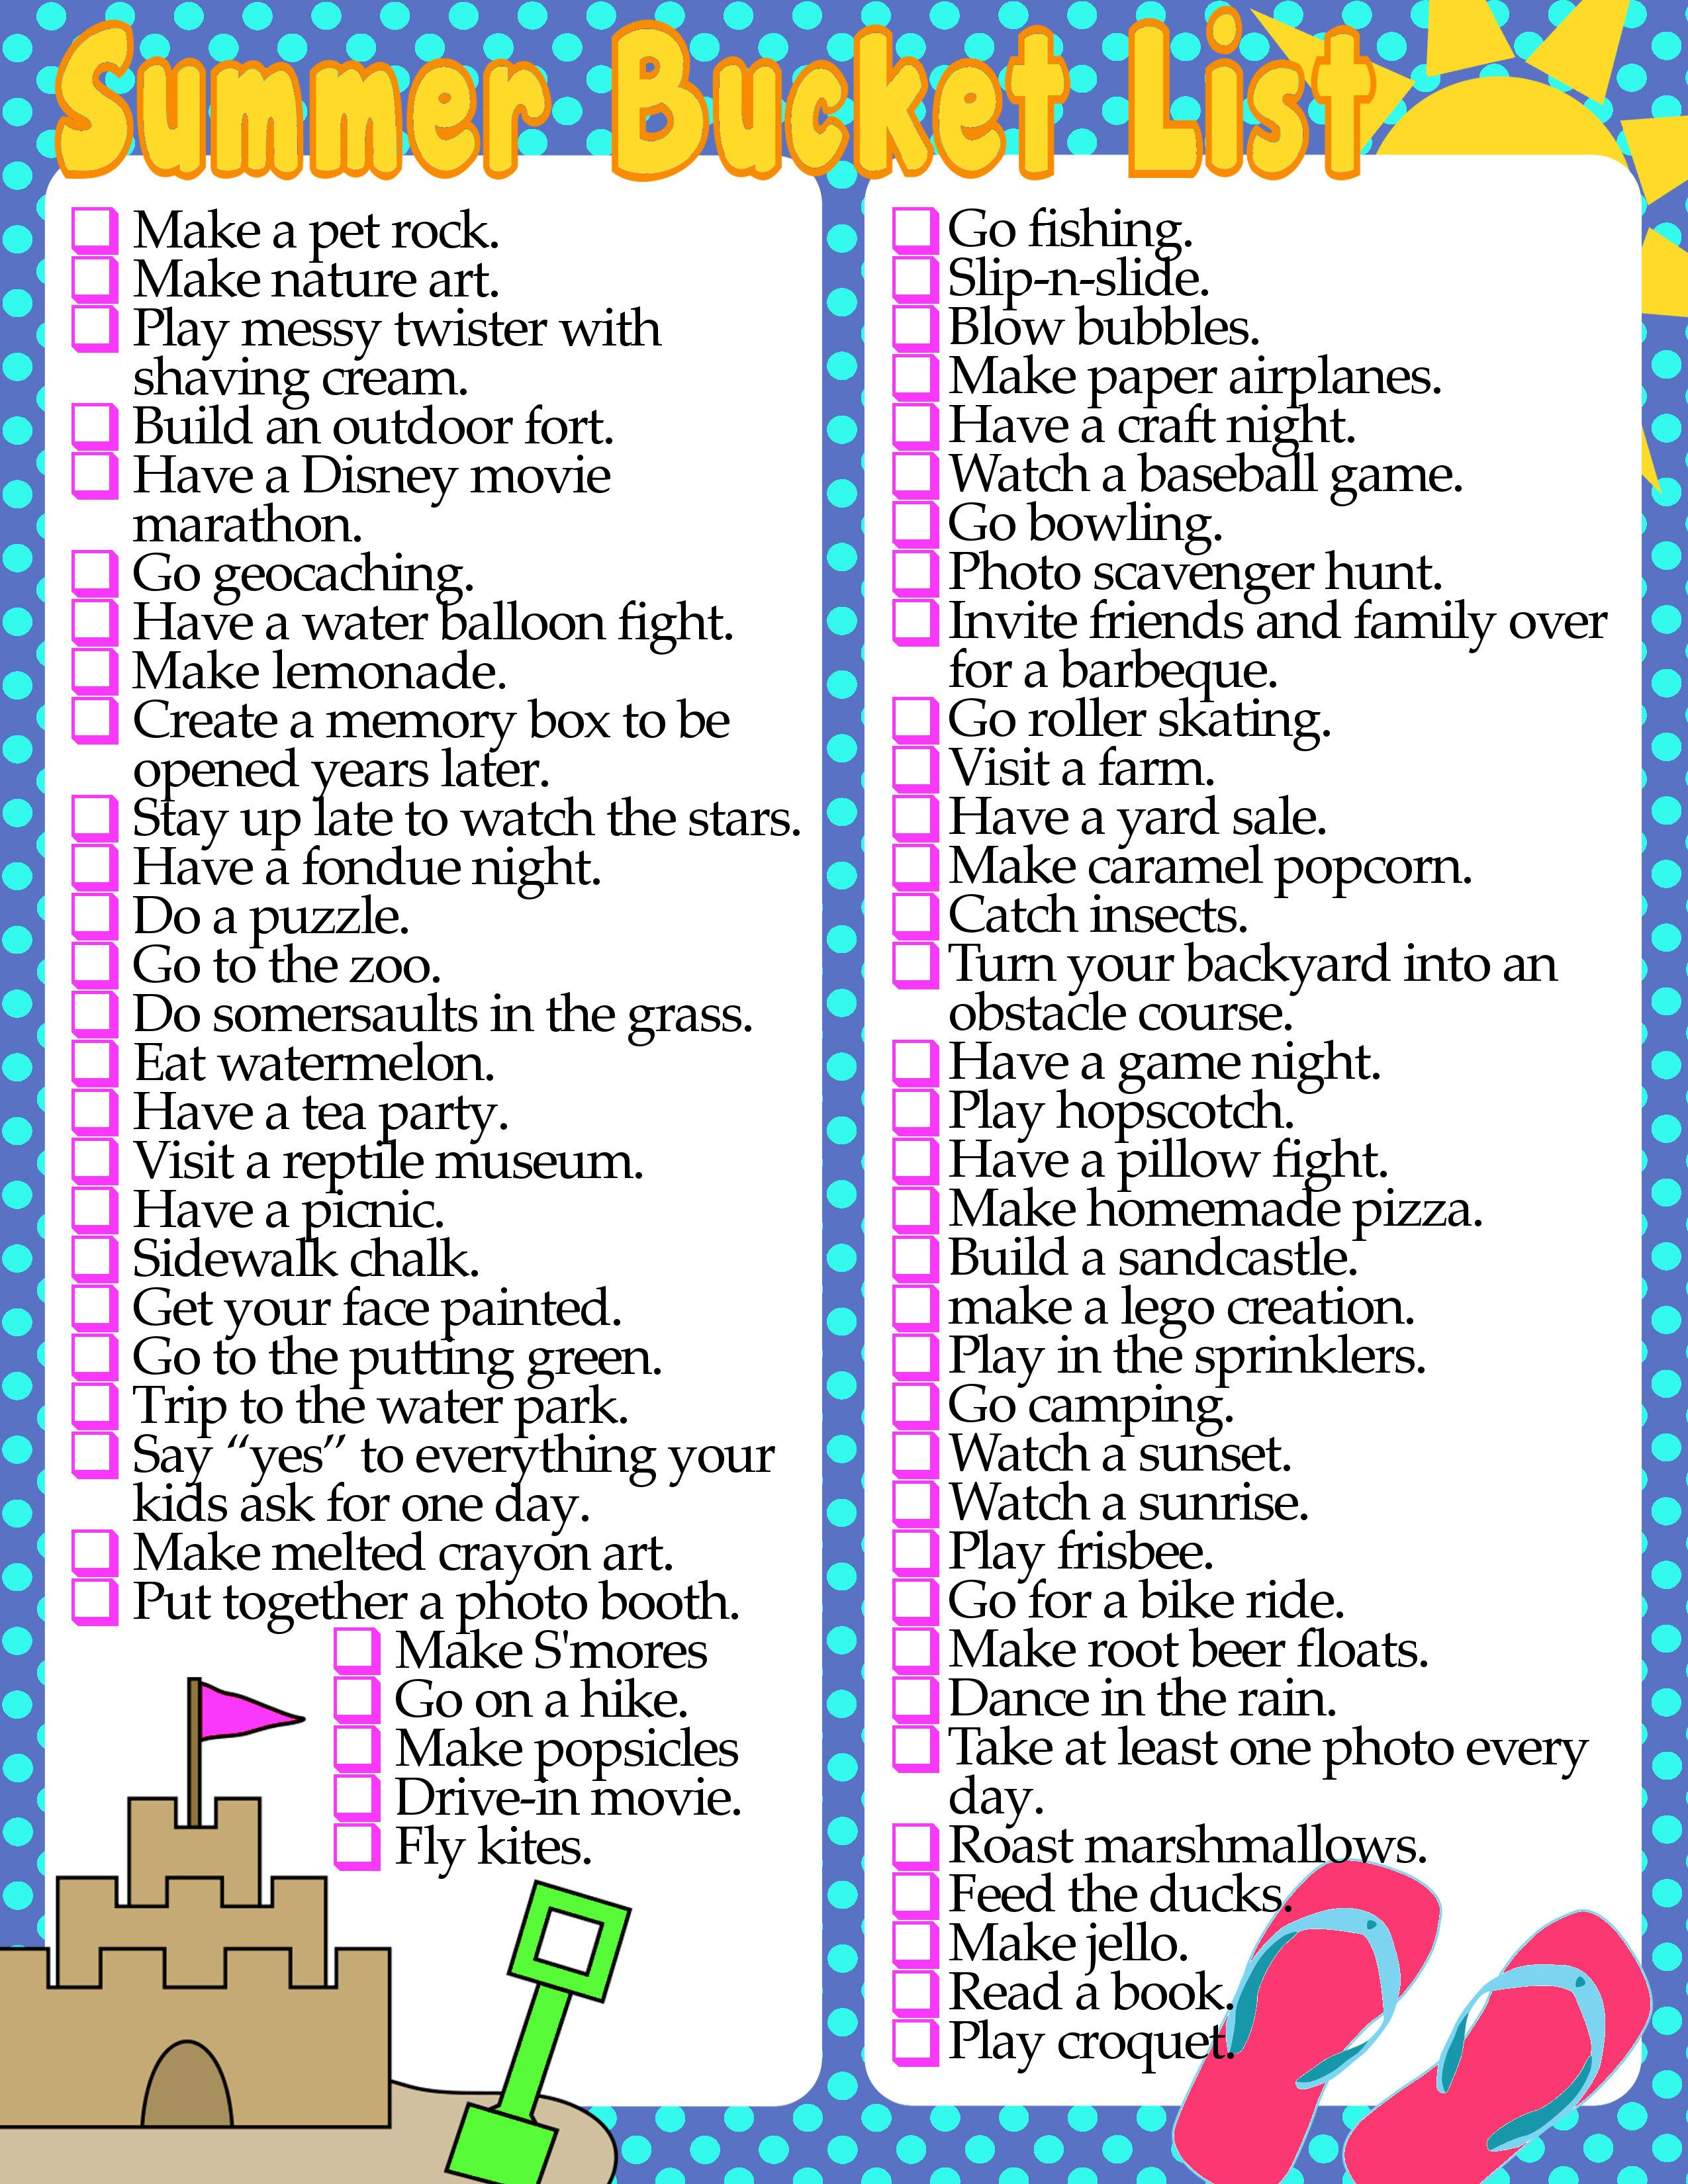 Bucket List Ideas That Are Free